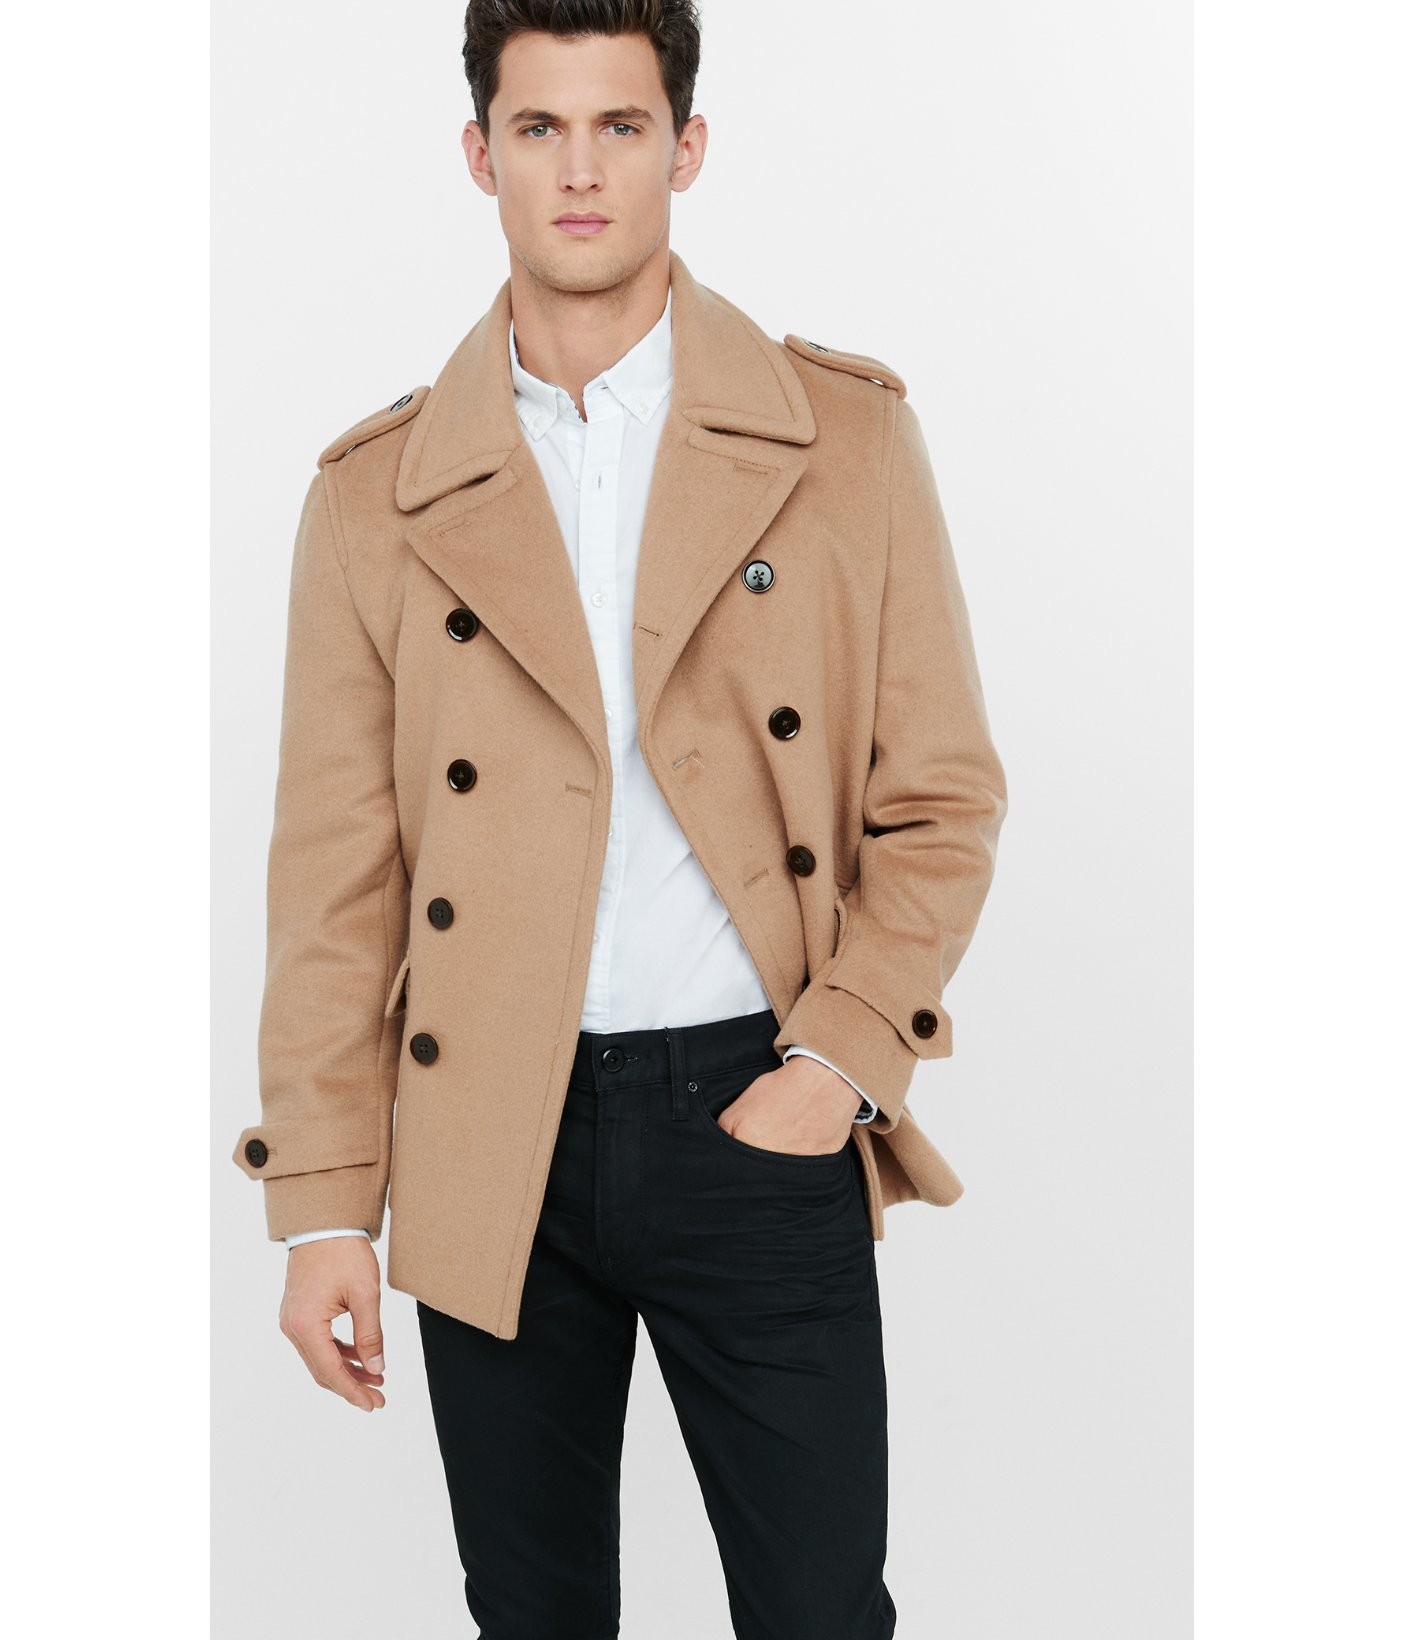 6386c18baa Express Wool Blend Camel Double Breasted Peacoat in Brown for Men - Lyst